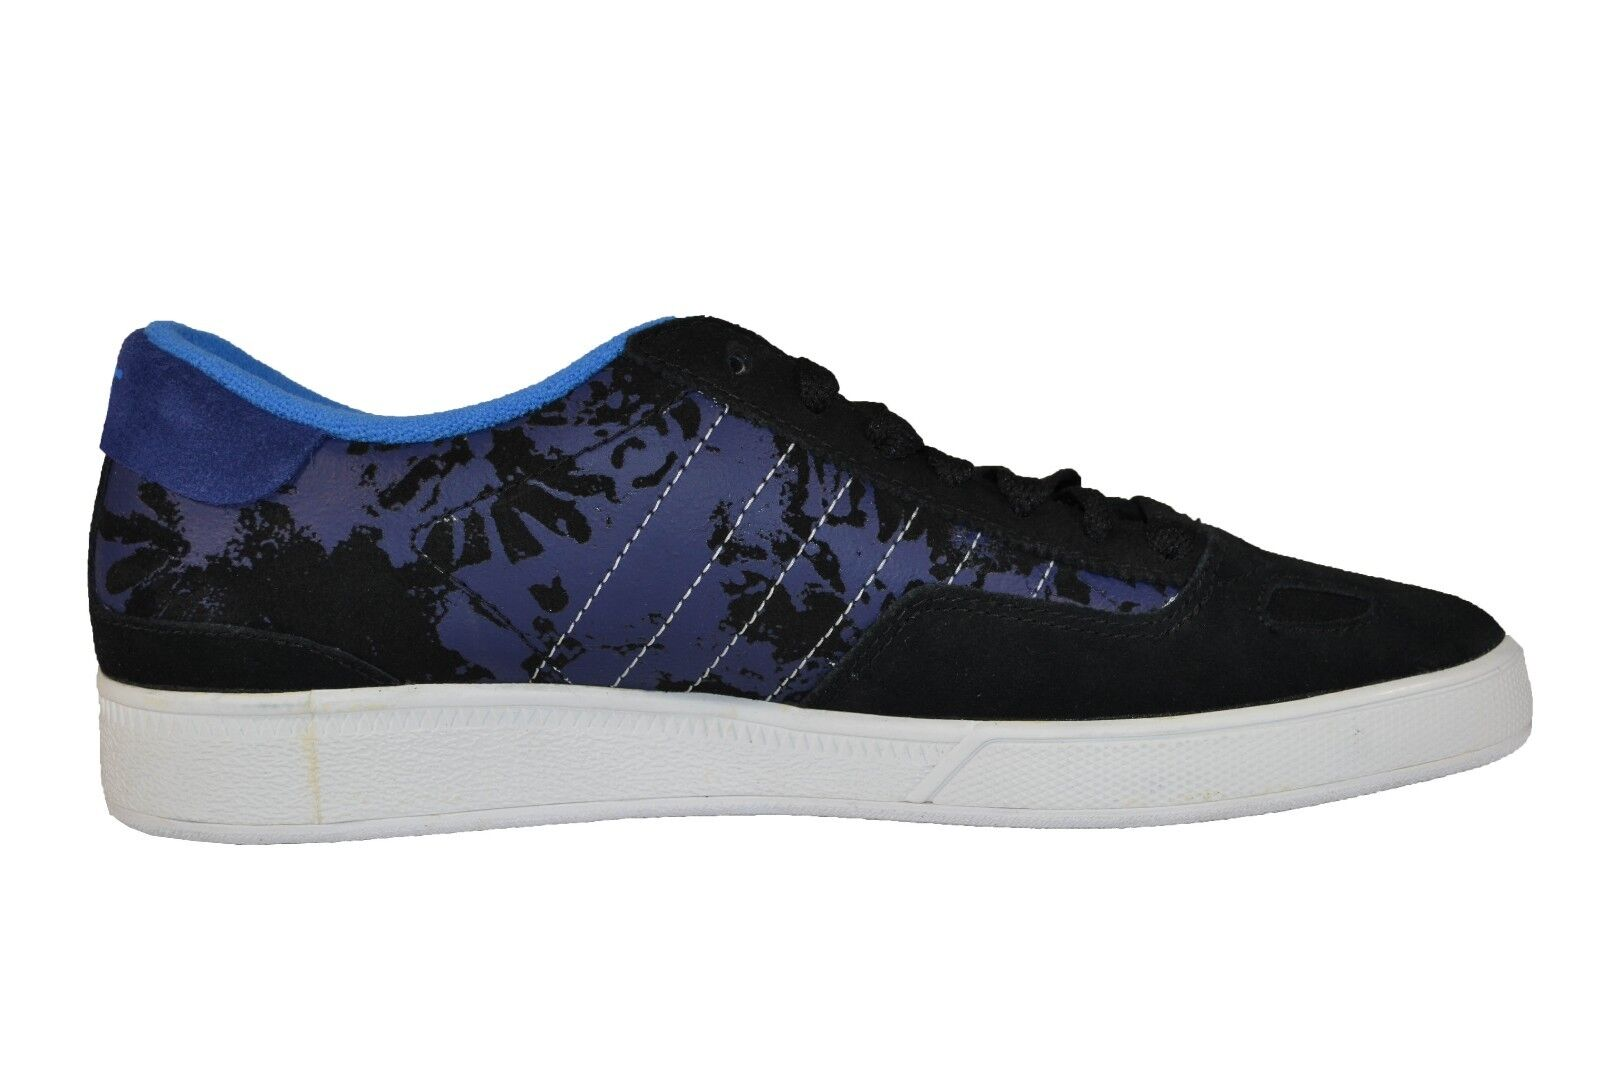 Adidas CIERO MARK GONZALES Noir bleu blanc 355424 Discounted (110) Men's  Chaussures